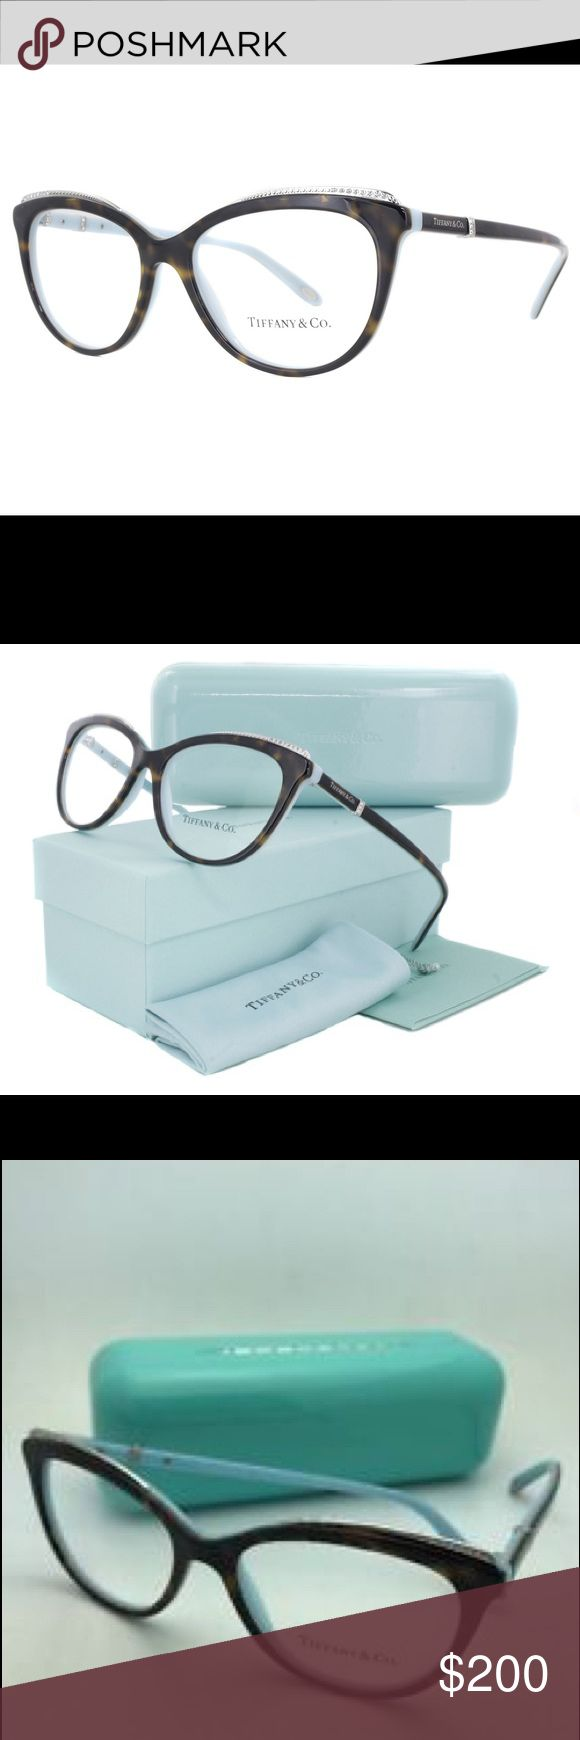 TIFFANY AND CO BEAUTIFUL EYEWEAR PRODUCT DESCRIPTION For over a century, Tiffany & Co.® has reigned as America's elite house of world-class jewelry. These women's designer eyeglasses in dark tortoise and lined in Tiffany blue lend feminine style to the cat eye shape. Crafted from acetate, these frames are flexible yet strong, as well as hypoallergenic. Flex hinges resist bending and give a comfy, adjustable fit. Exquisite crystal jewels define slender temples. Tiffany & Co. Accessories…